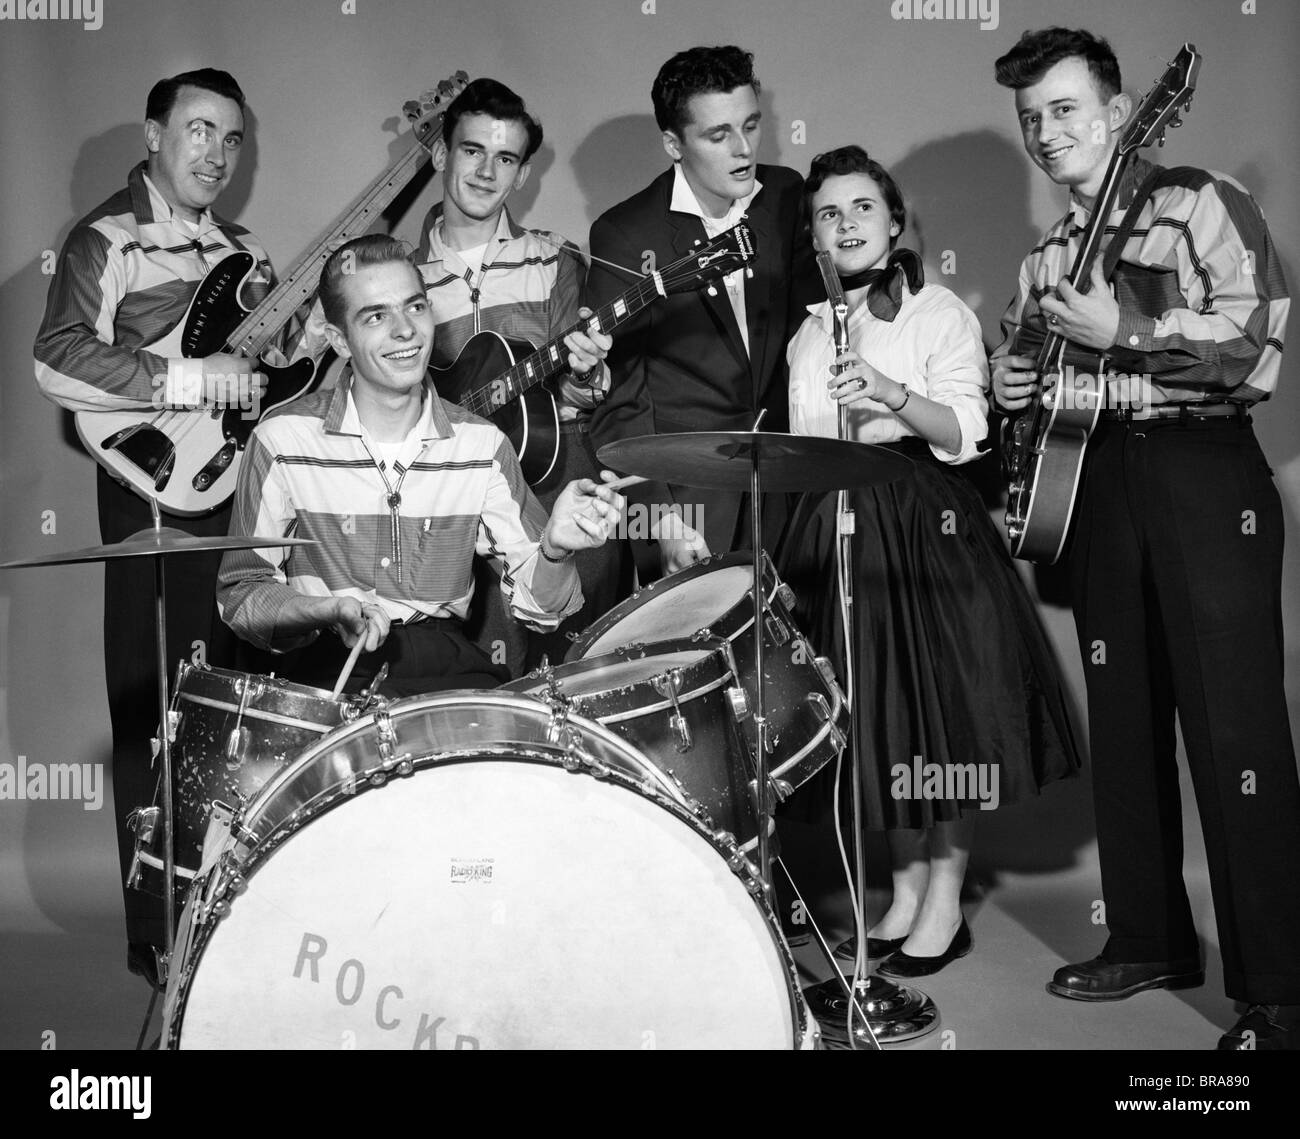 1950s SMILING TEENAGE 6 MEMBER ROCK-A-BILLY BAND IN MATCHING OUTFITS - Stock Image